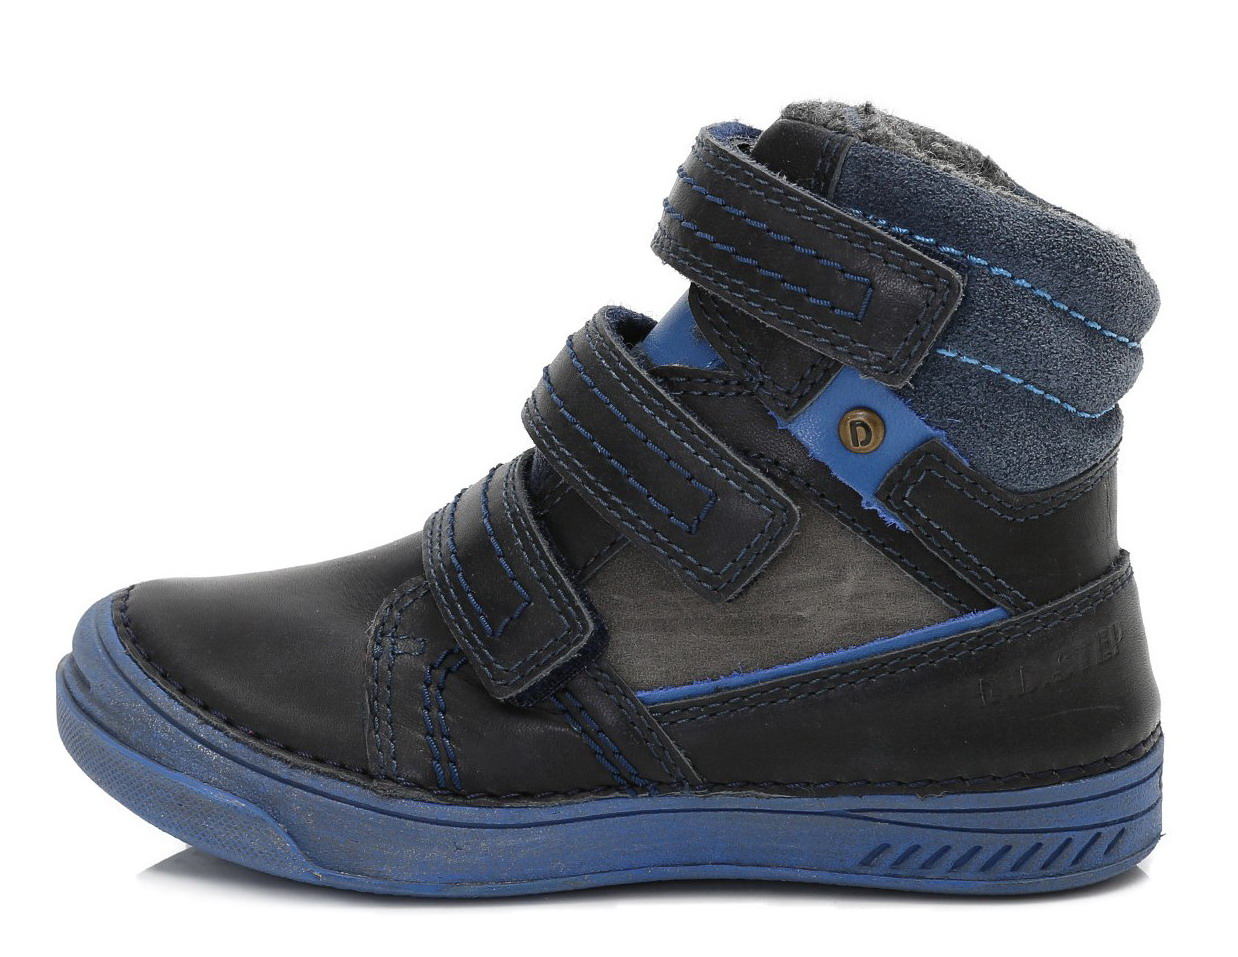 Obuv D.D.Step 040-426B Royal Blue